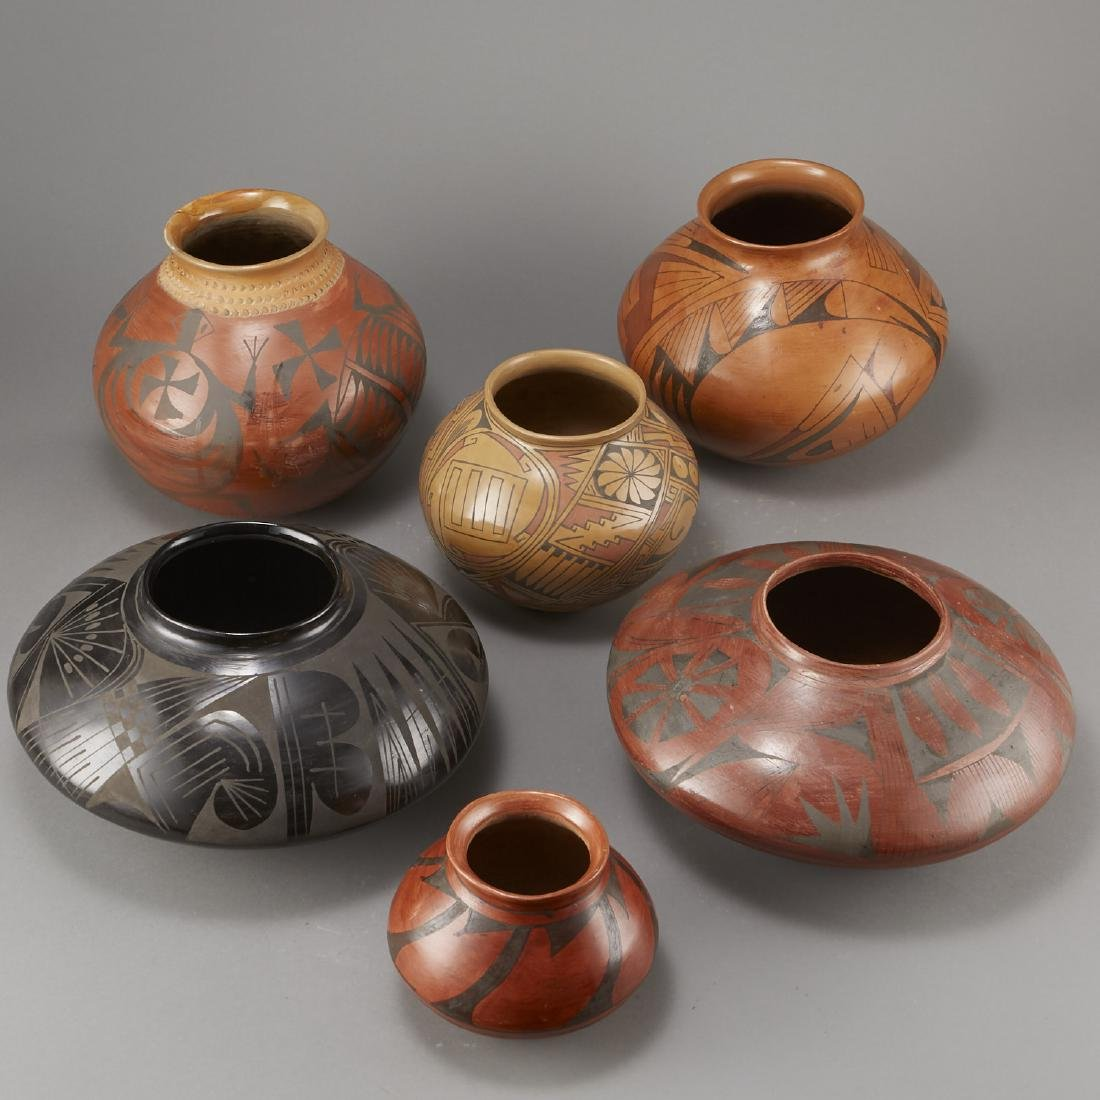 6 Pieces of Polychrome Pottery - 4